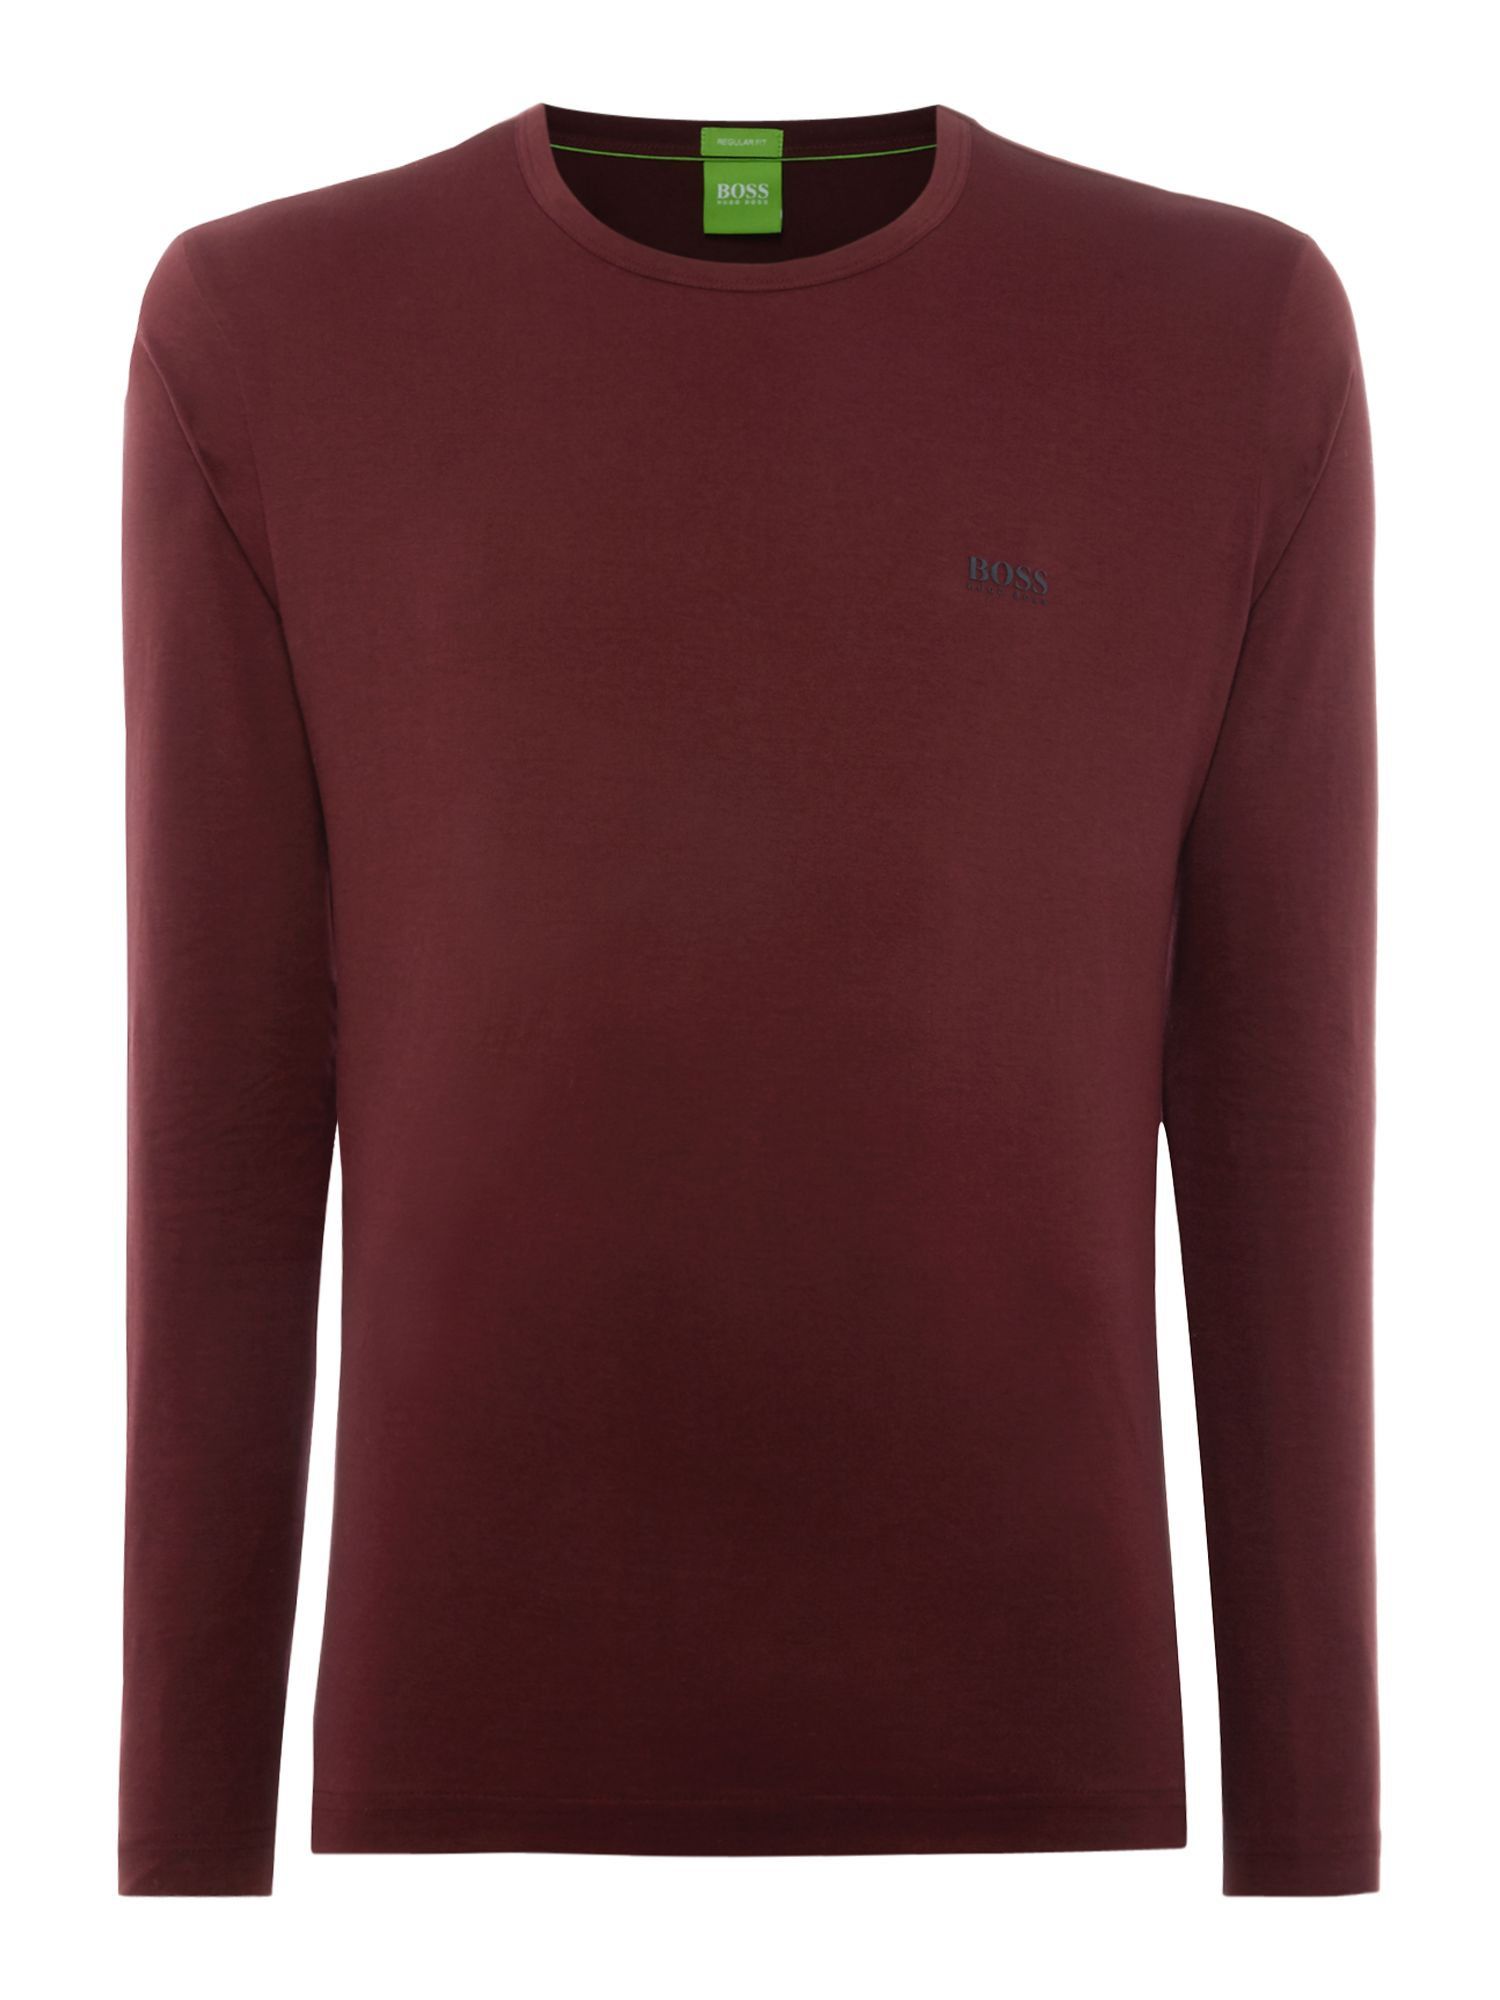 Men's Hugo Boss Togn Regular Fit Long sleeve T-Shirt, Red